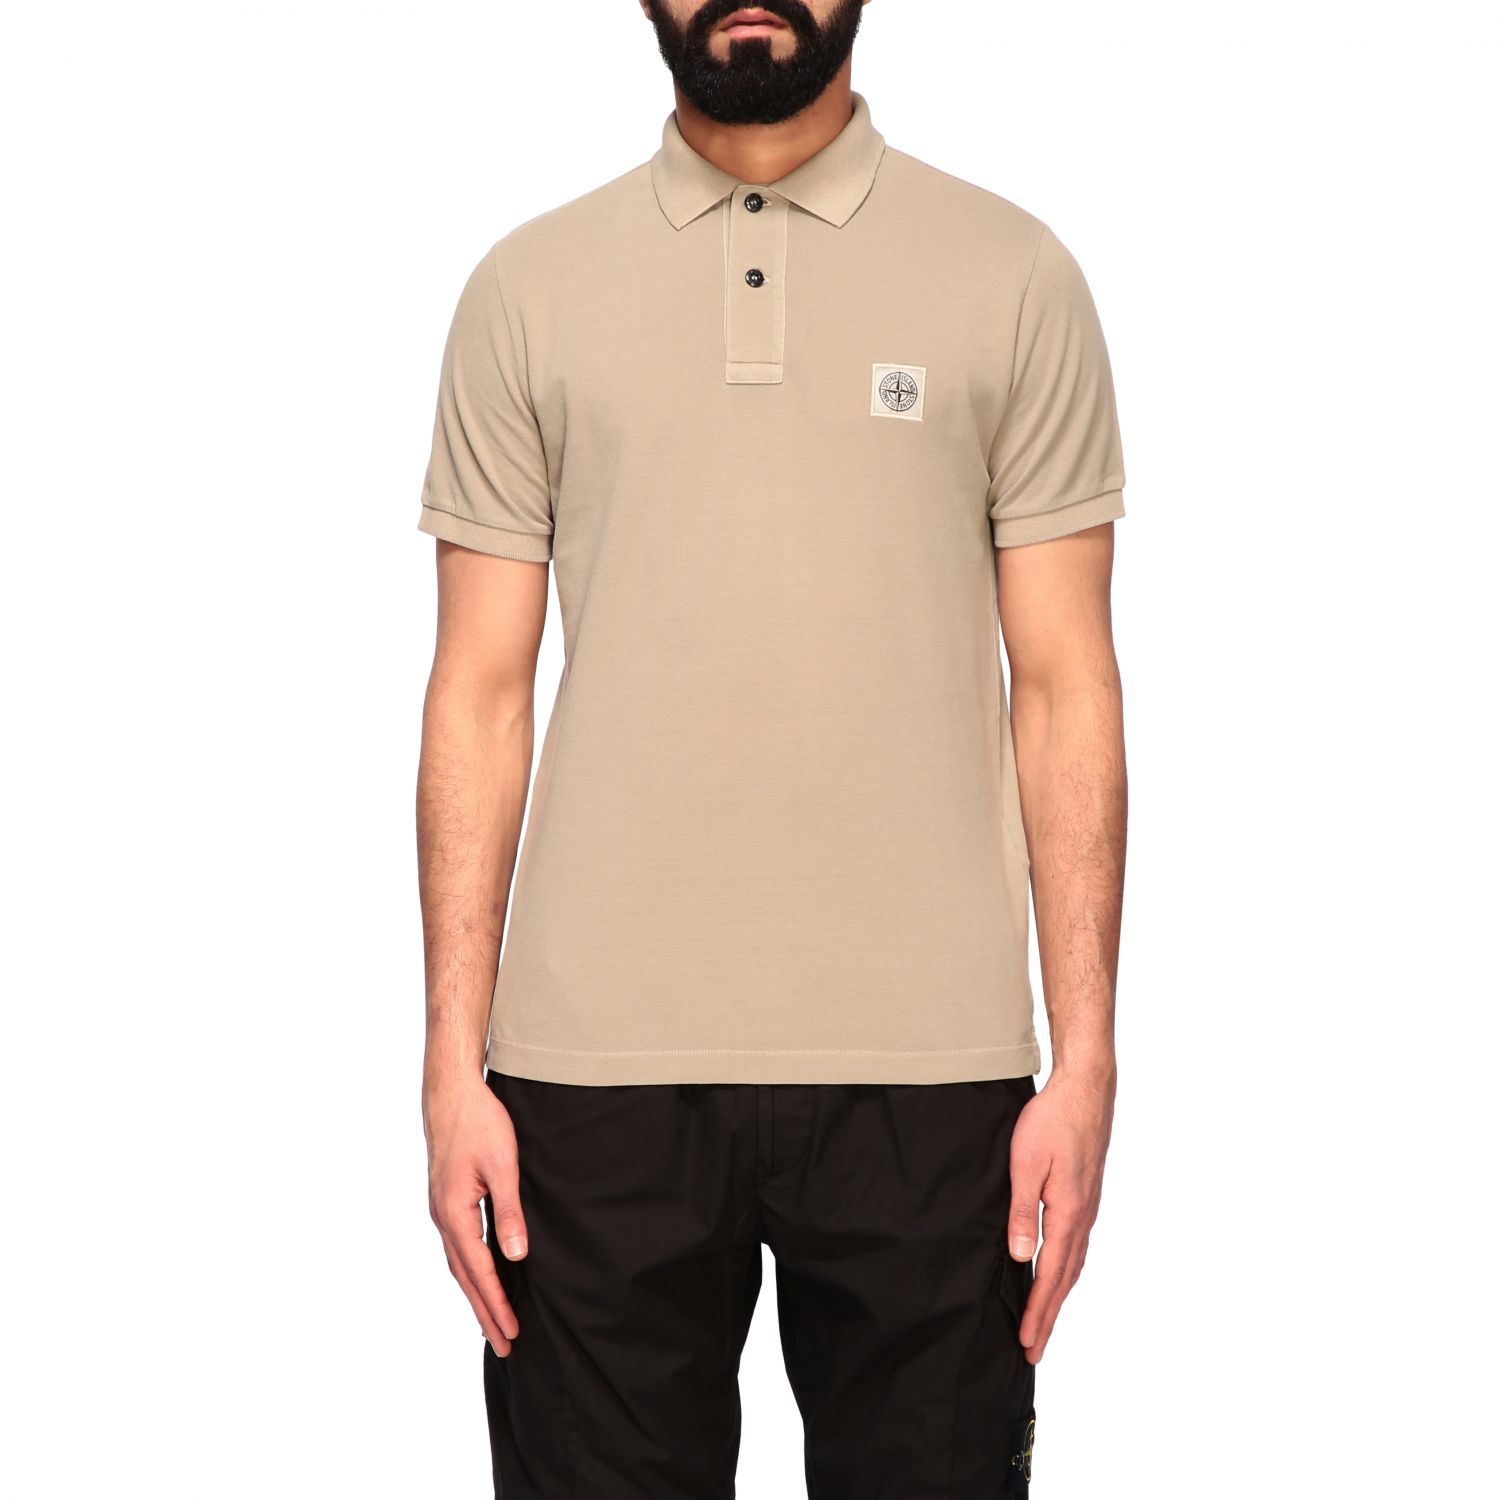 Stone Island short-sleeved polo shirt burnt 1